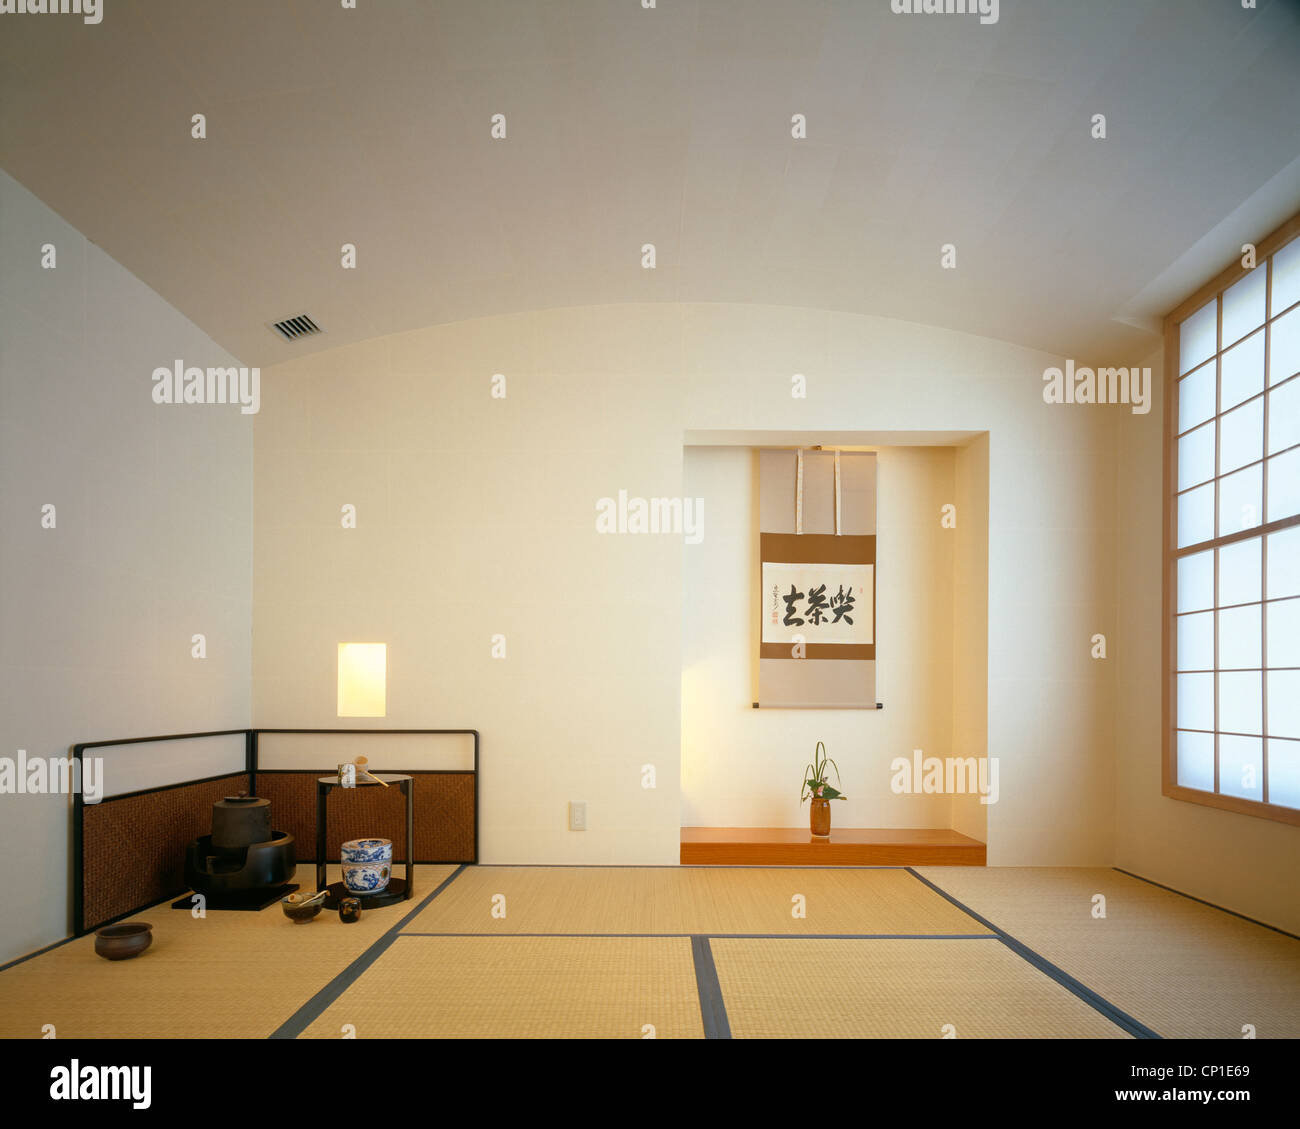 Minimalist Living Space Minimalist Japanese Living Space Stock Photo 47976273 Alamy